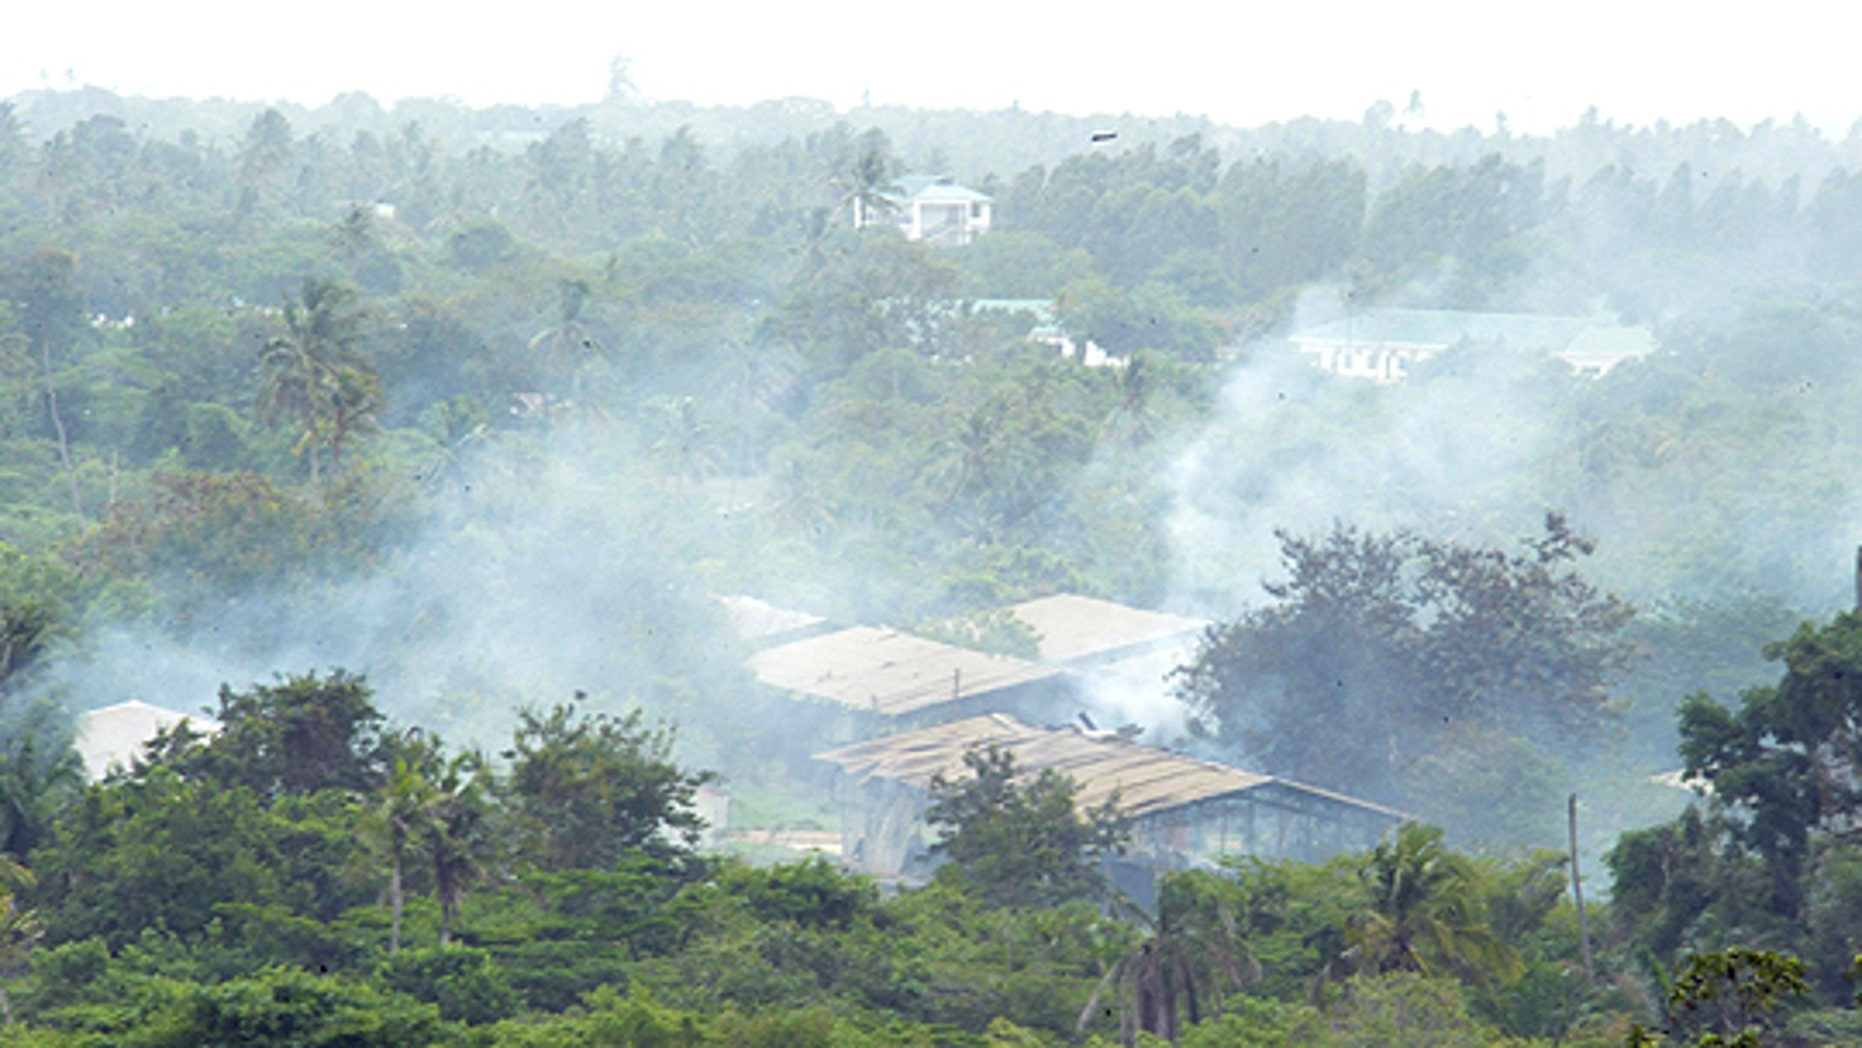 Feb. 17: Smoke drifts over the Gongolamboto military camp on the outskirts of Dar es Salaam following several explosions.